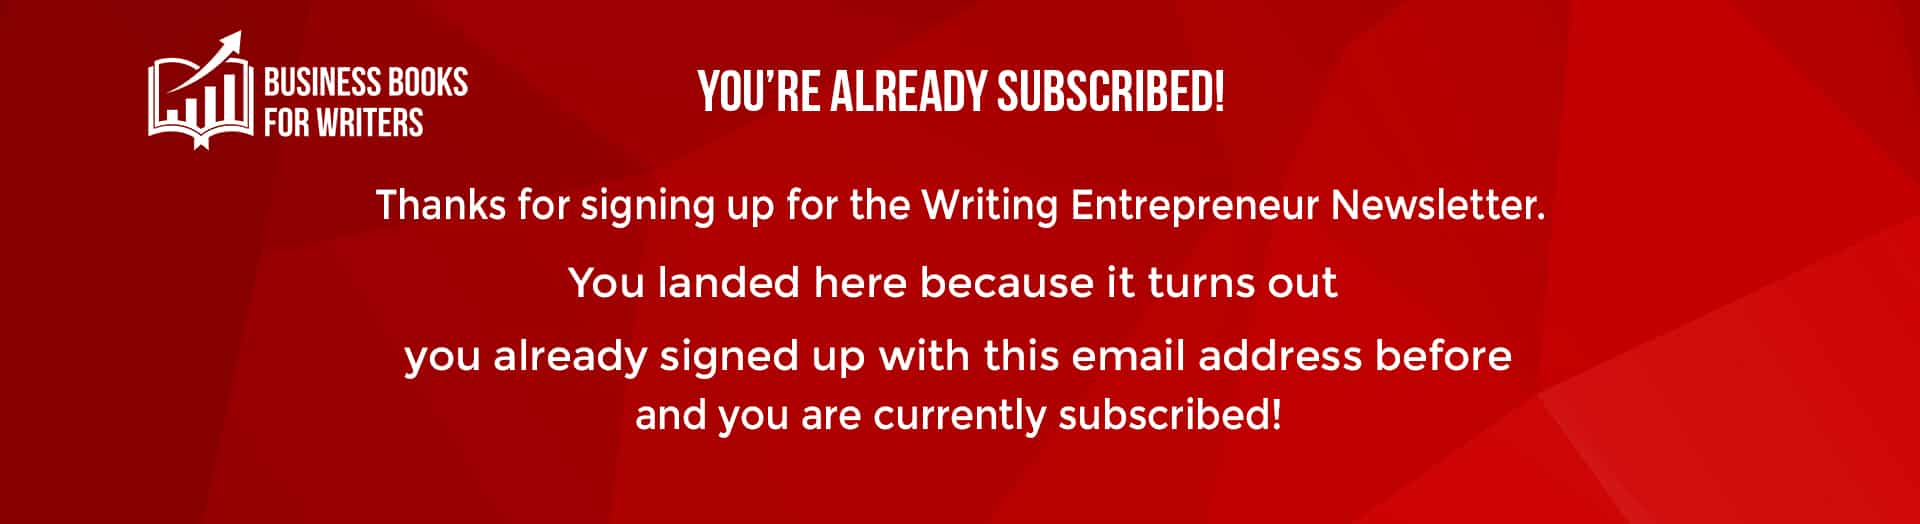 Newsletter already subscribed page